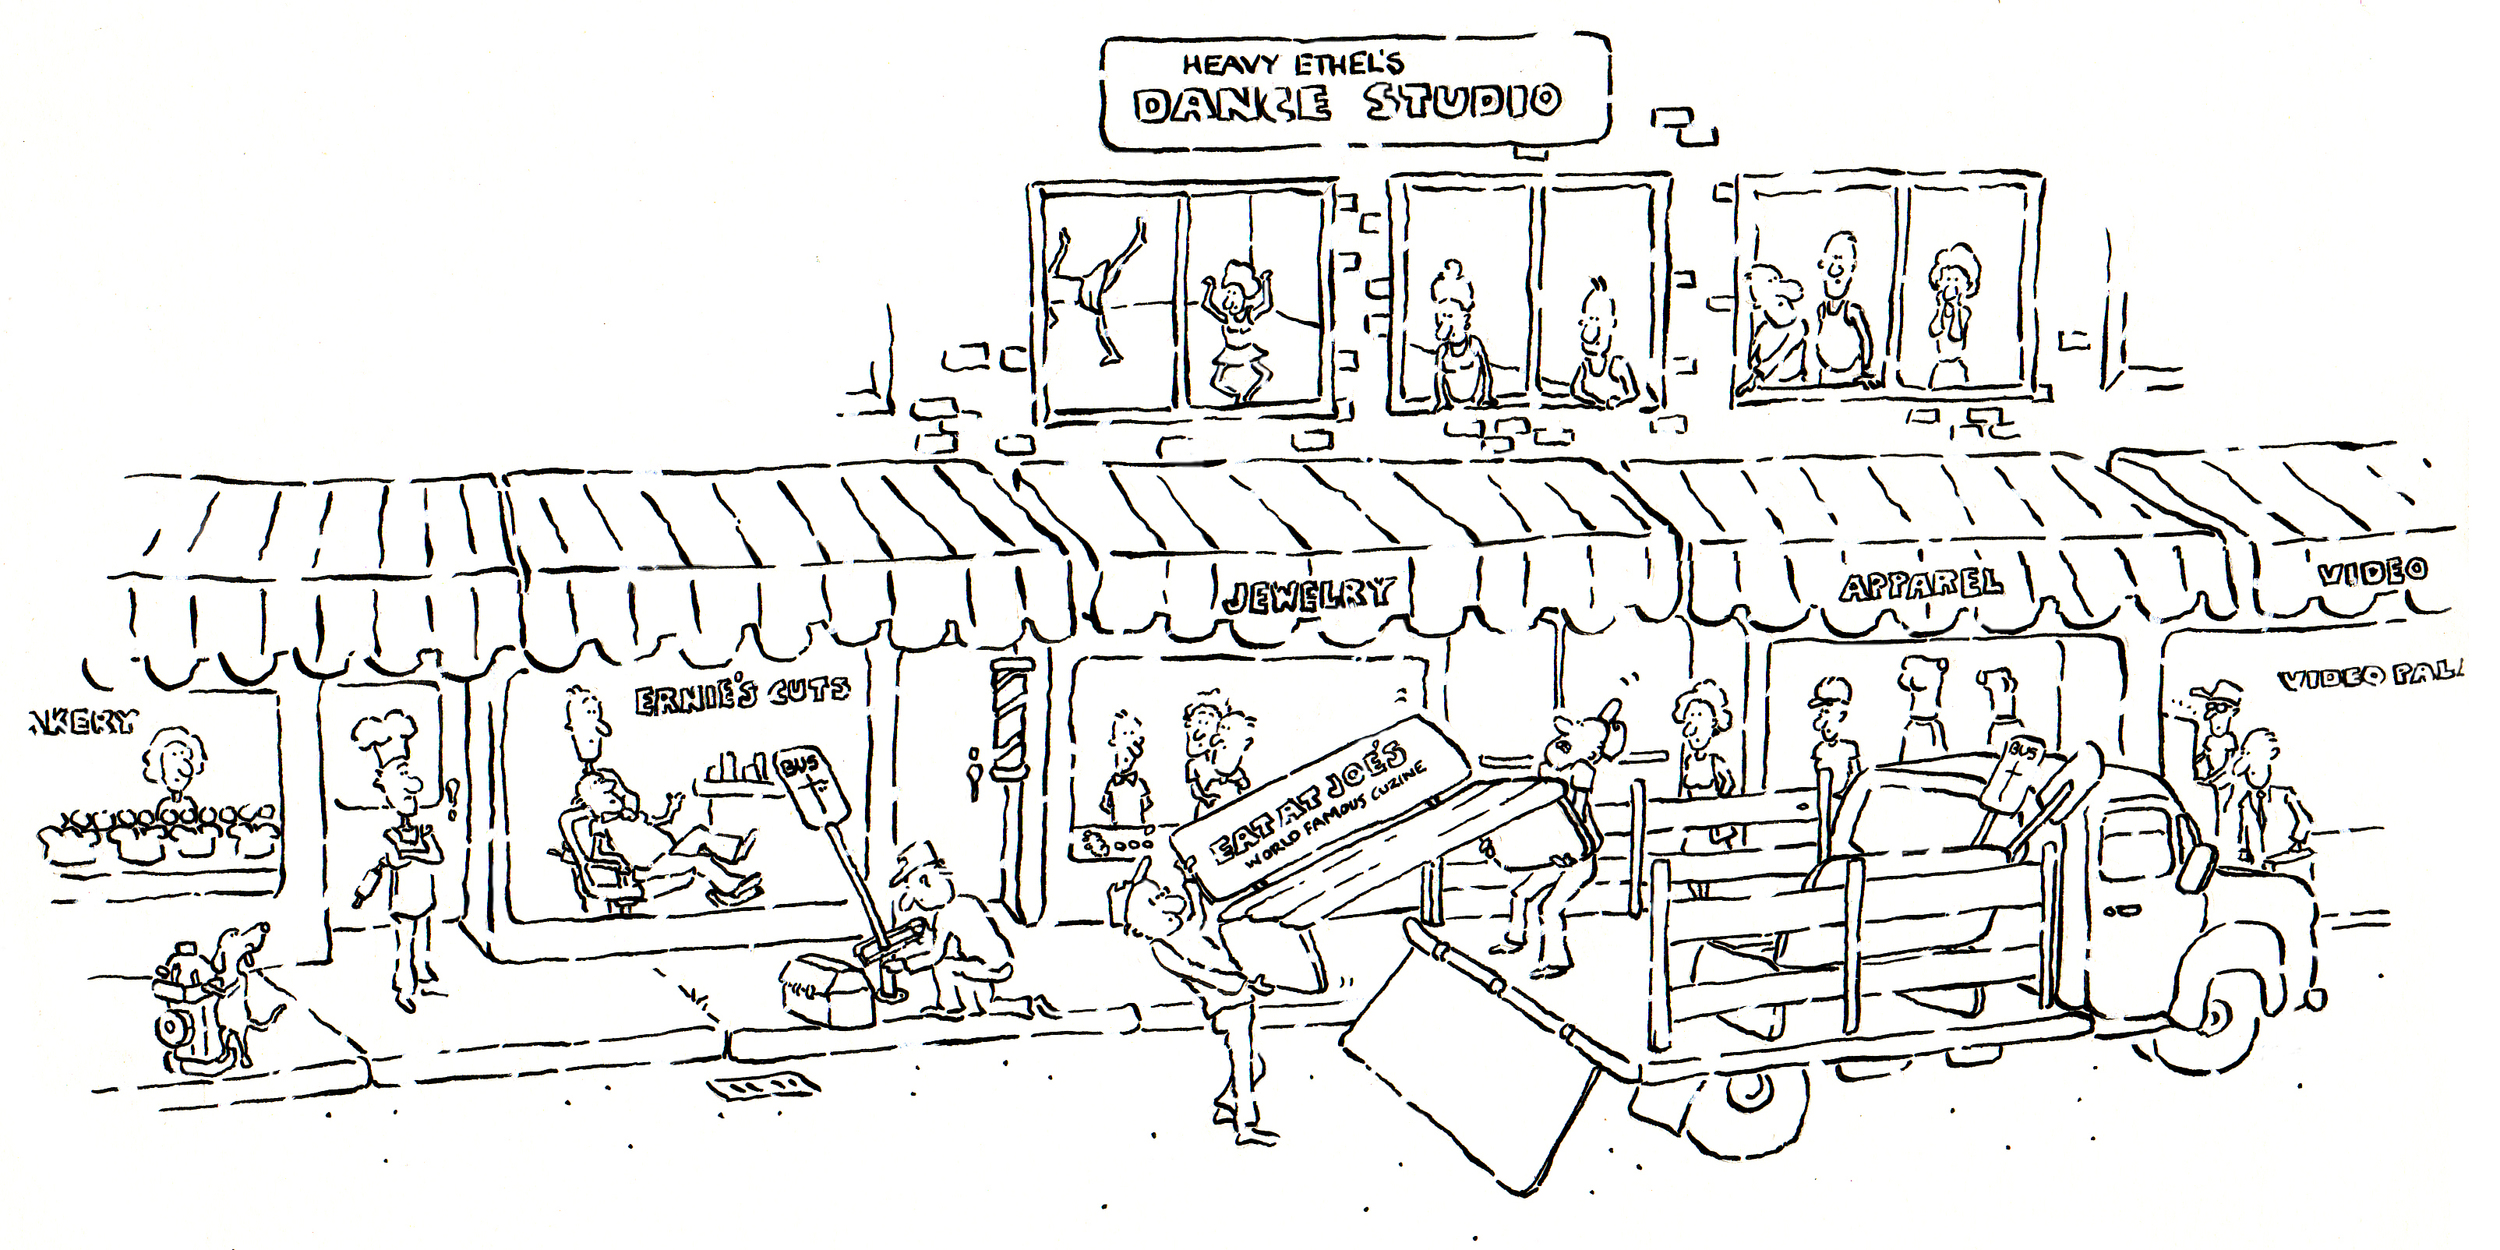 My first published art — a cartoon for a public transit brochure in the early 80's.